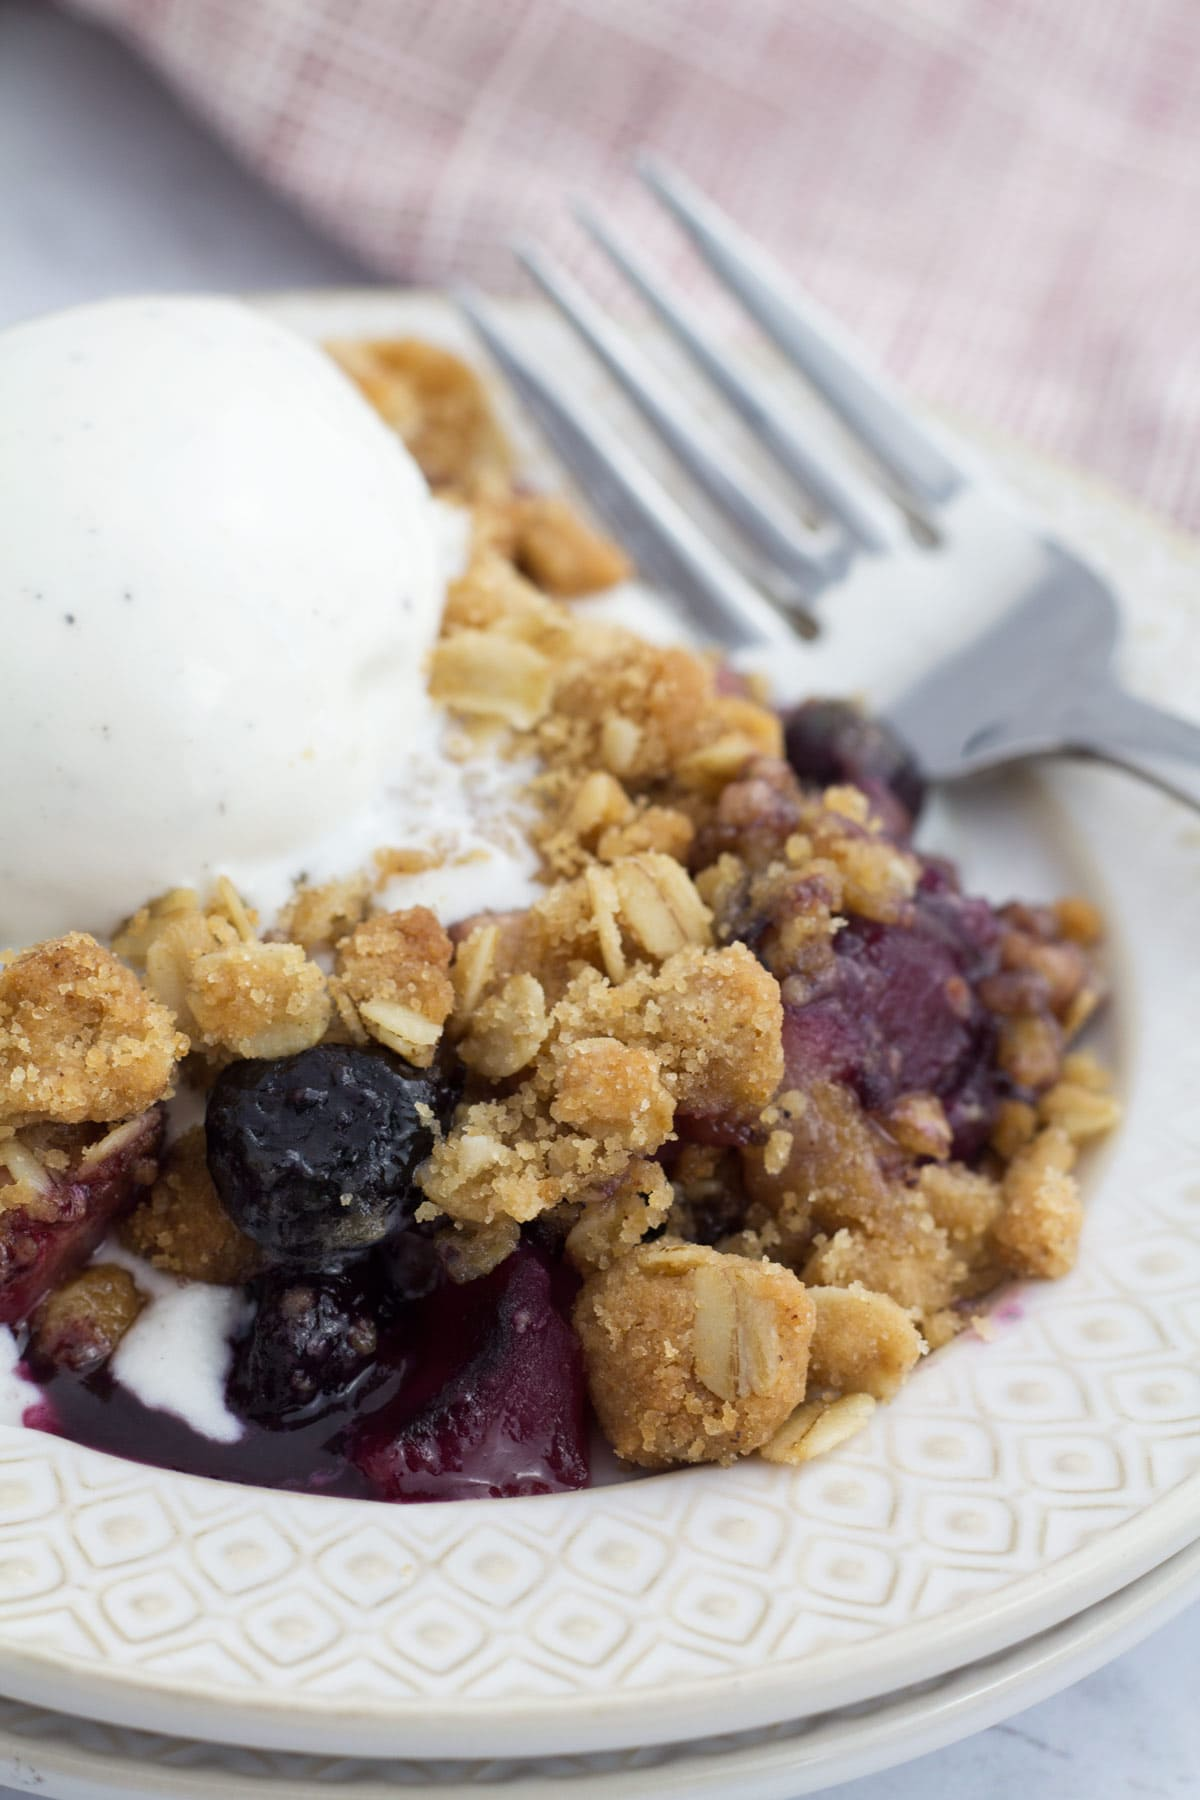 Small plate with apple and blueberry crumble, ice cream, and a fork.